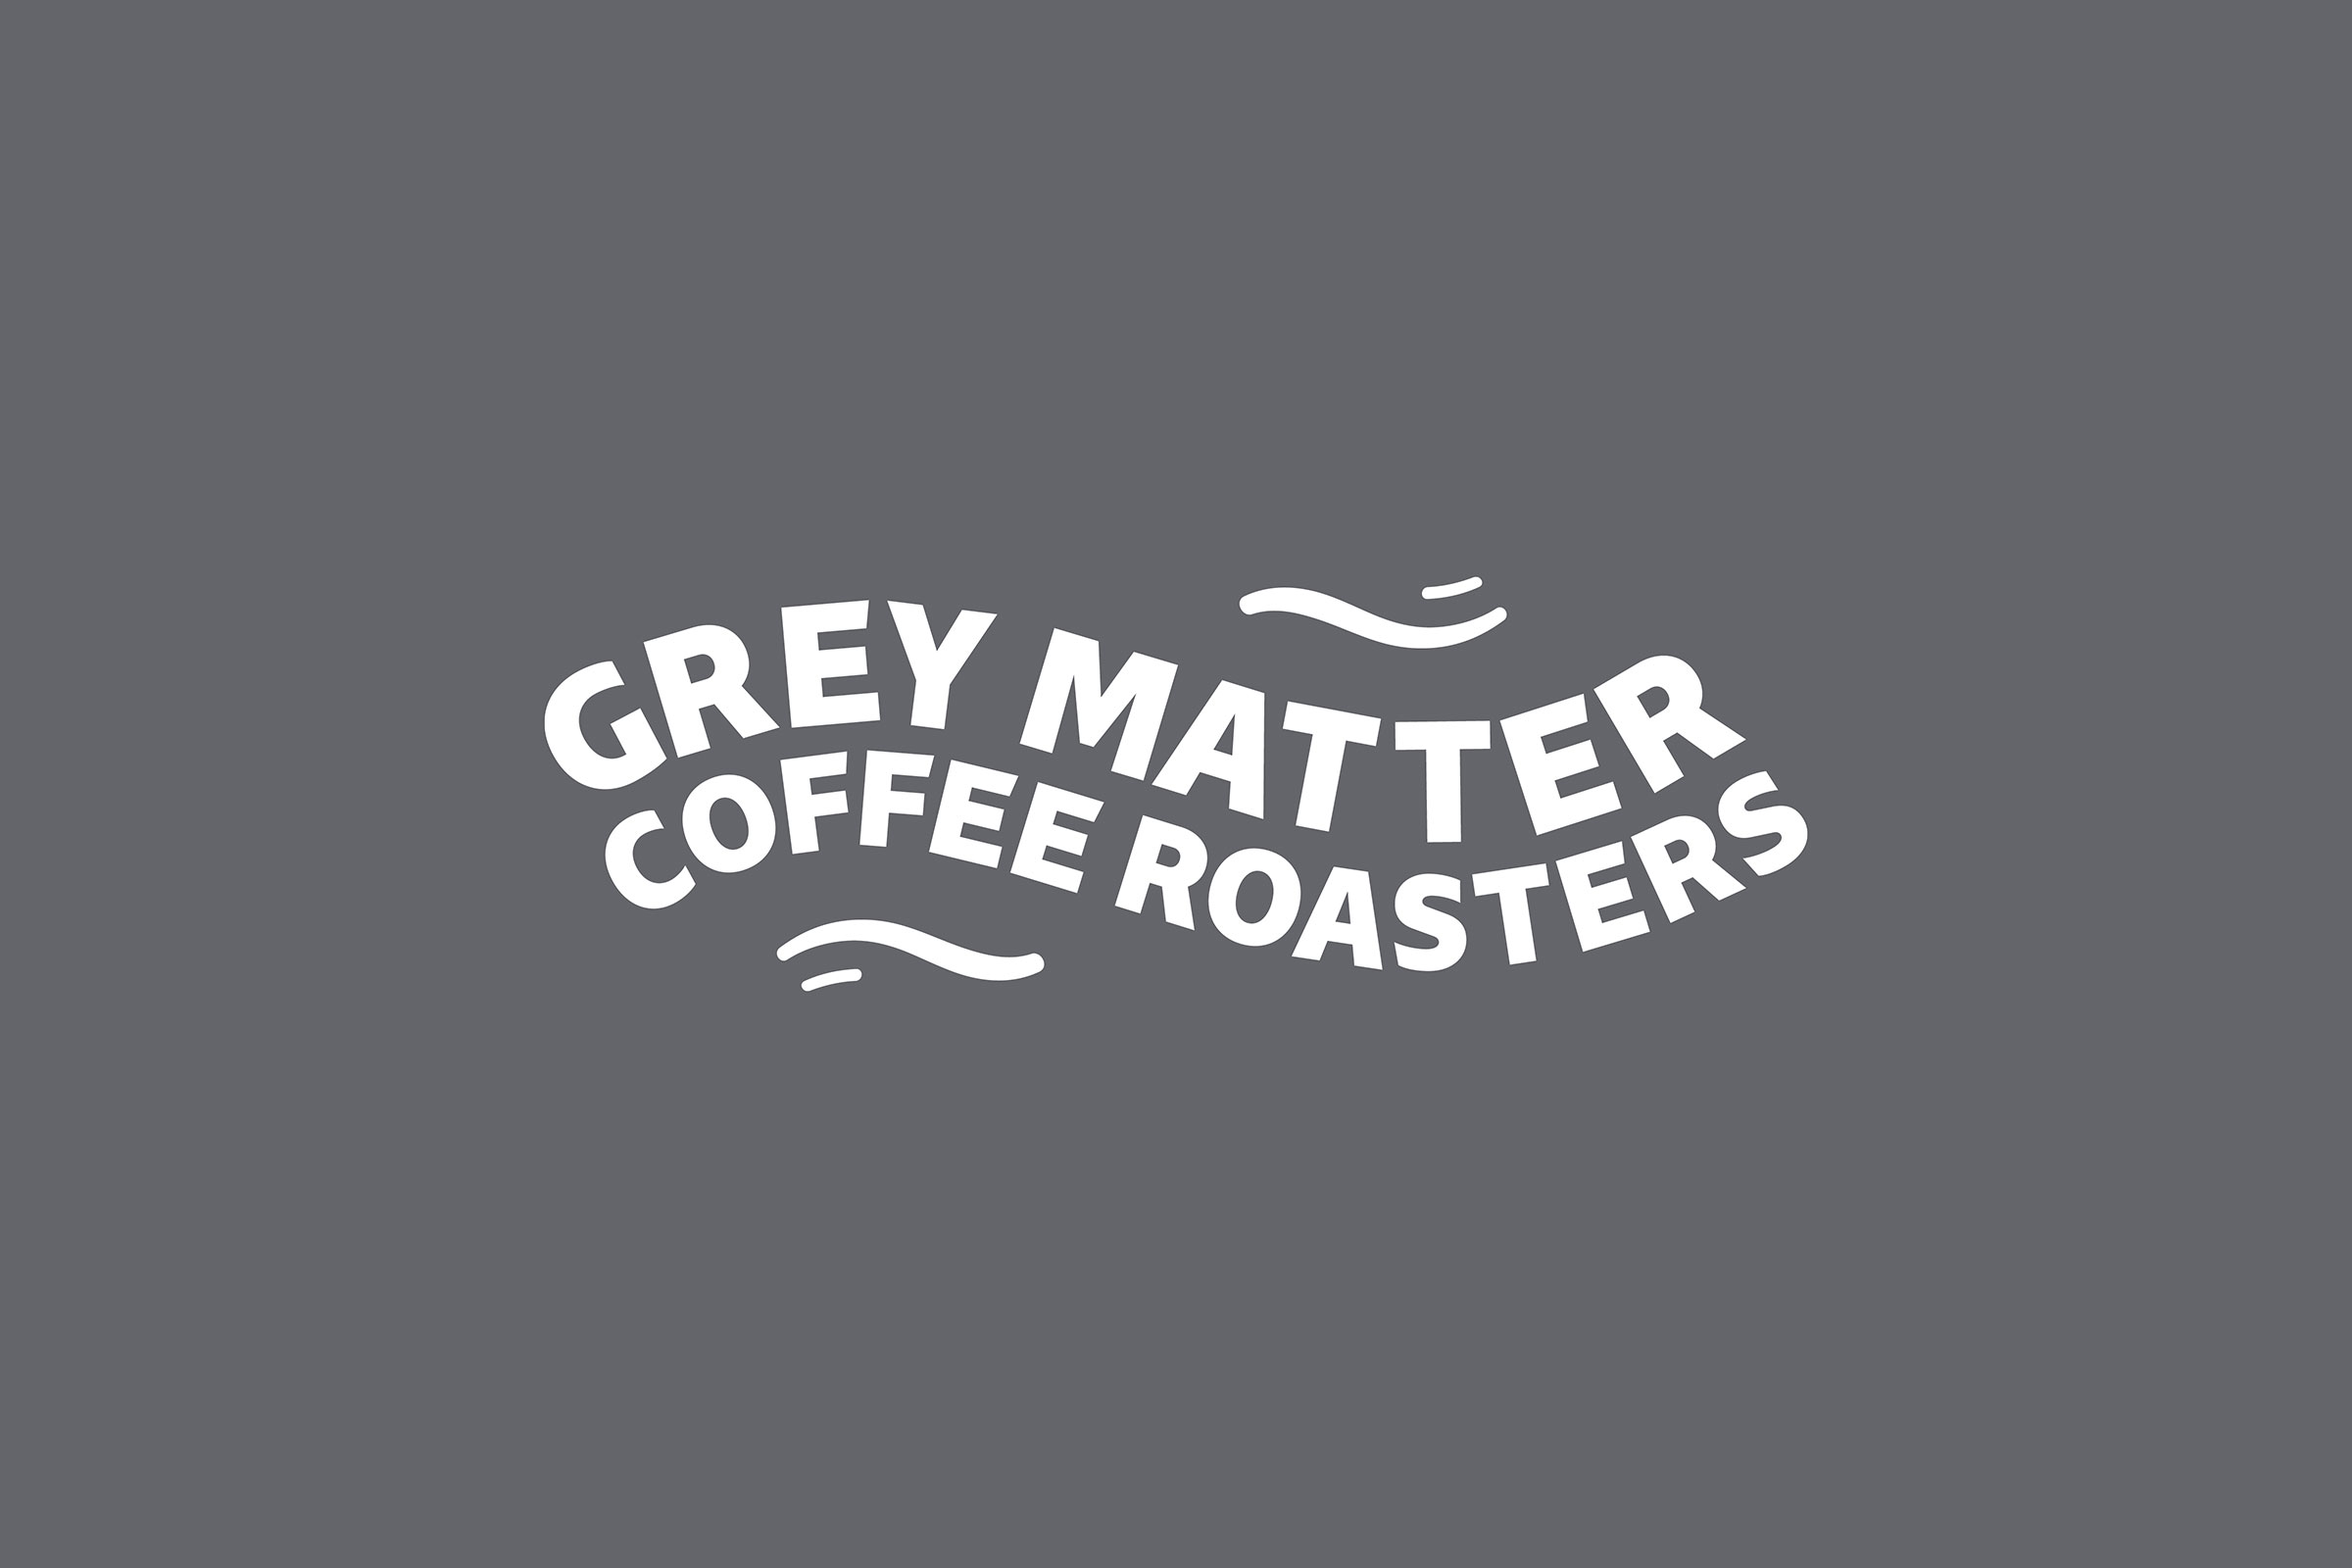 Grey matter logo design. White text on Pantone cool grey background